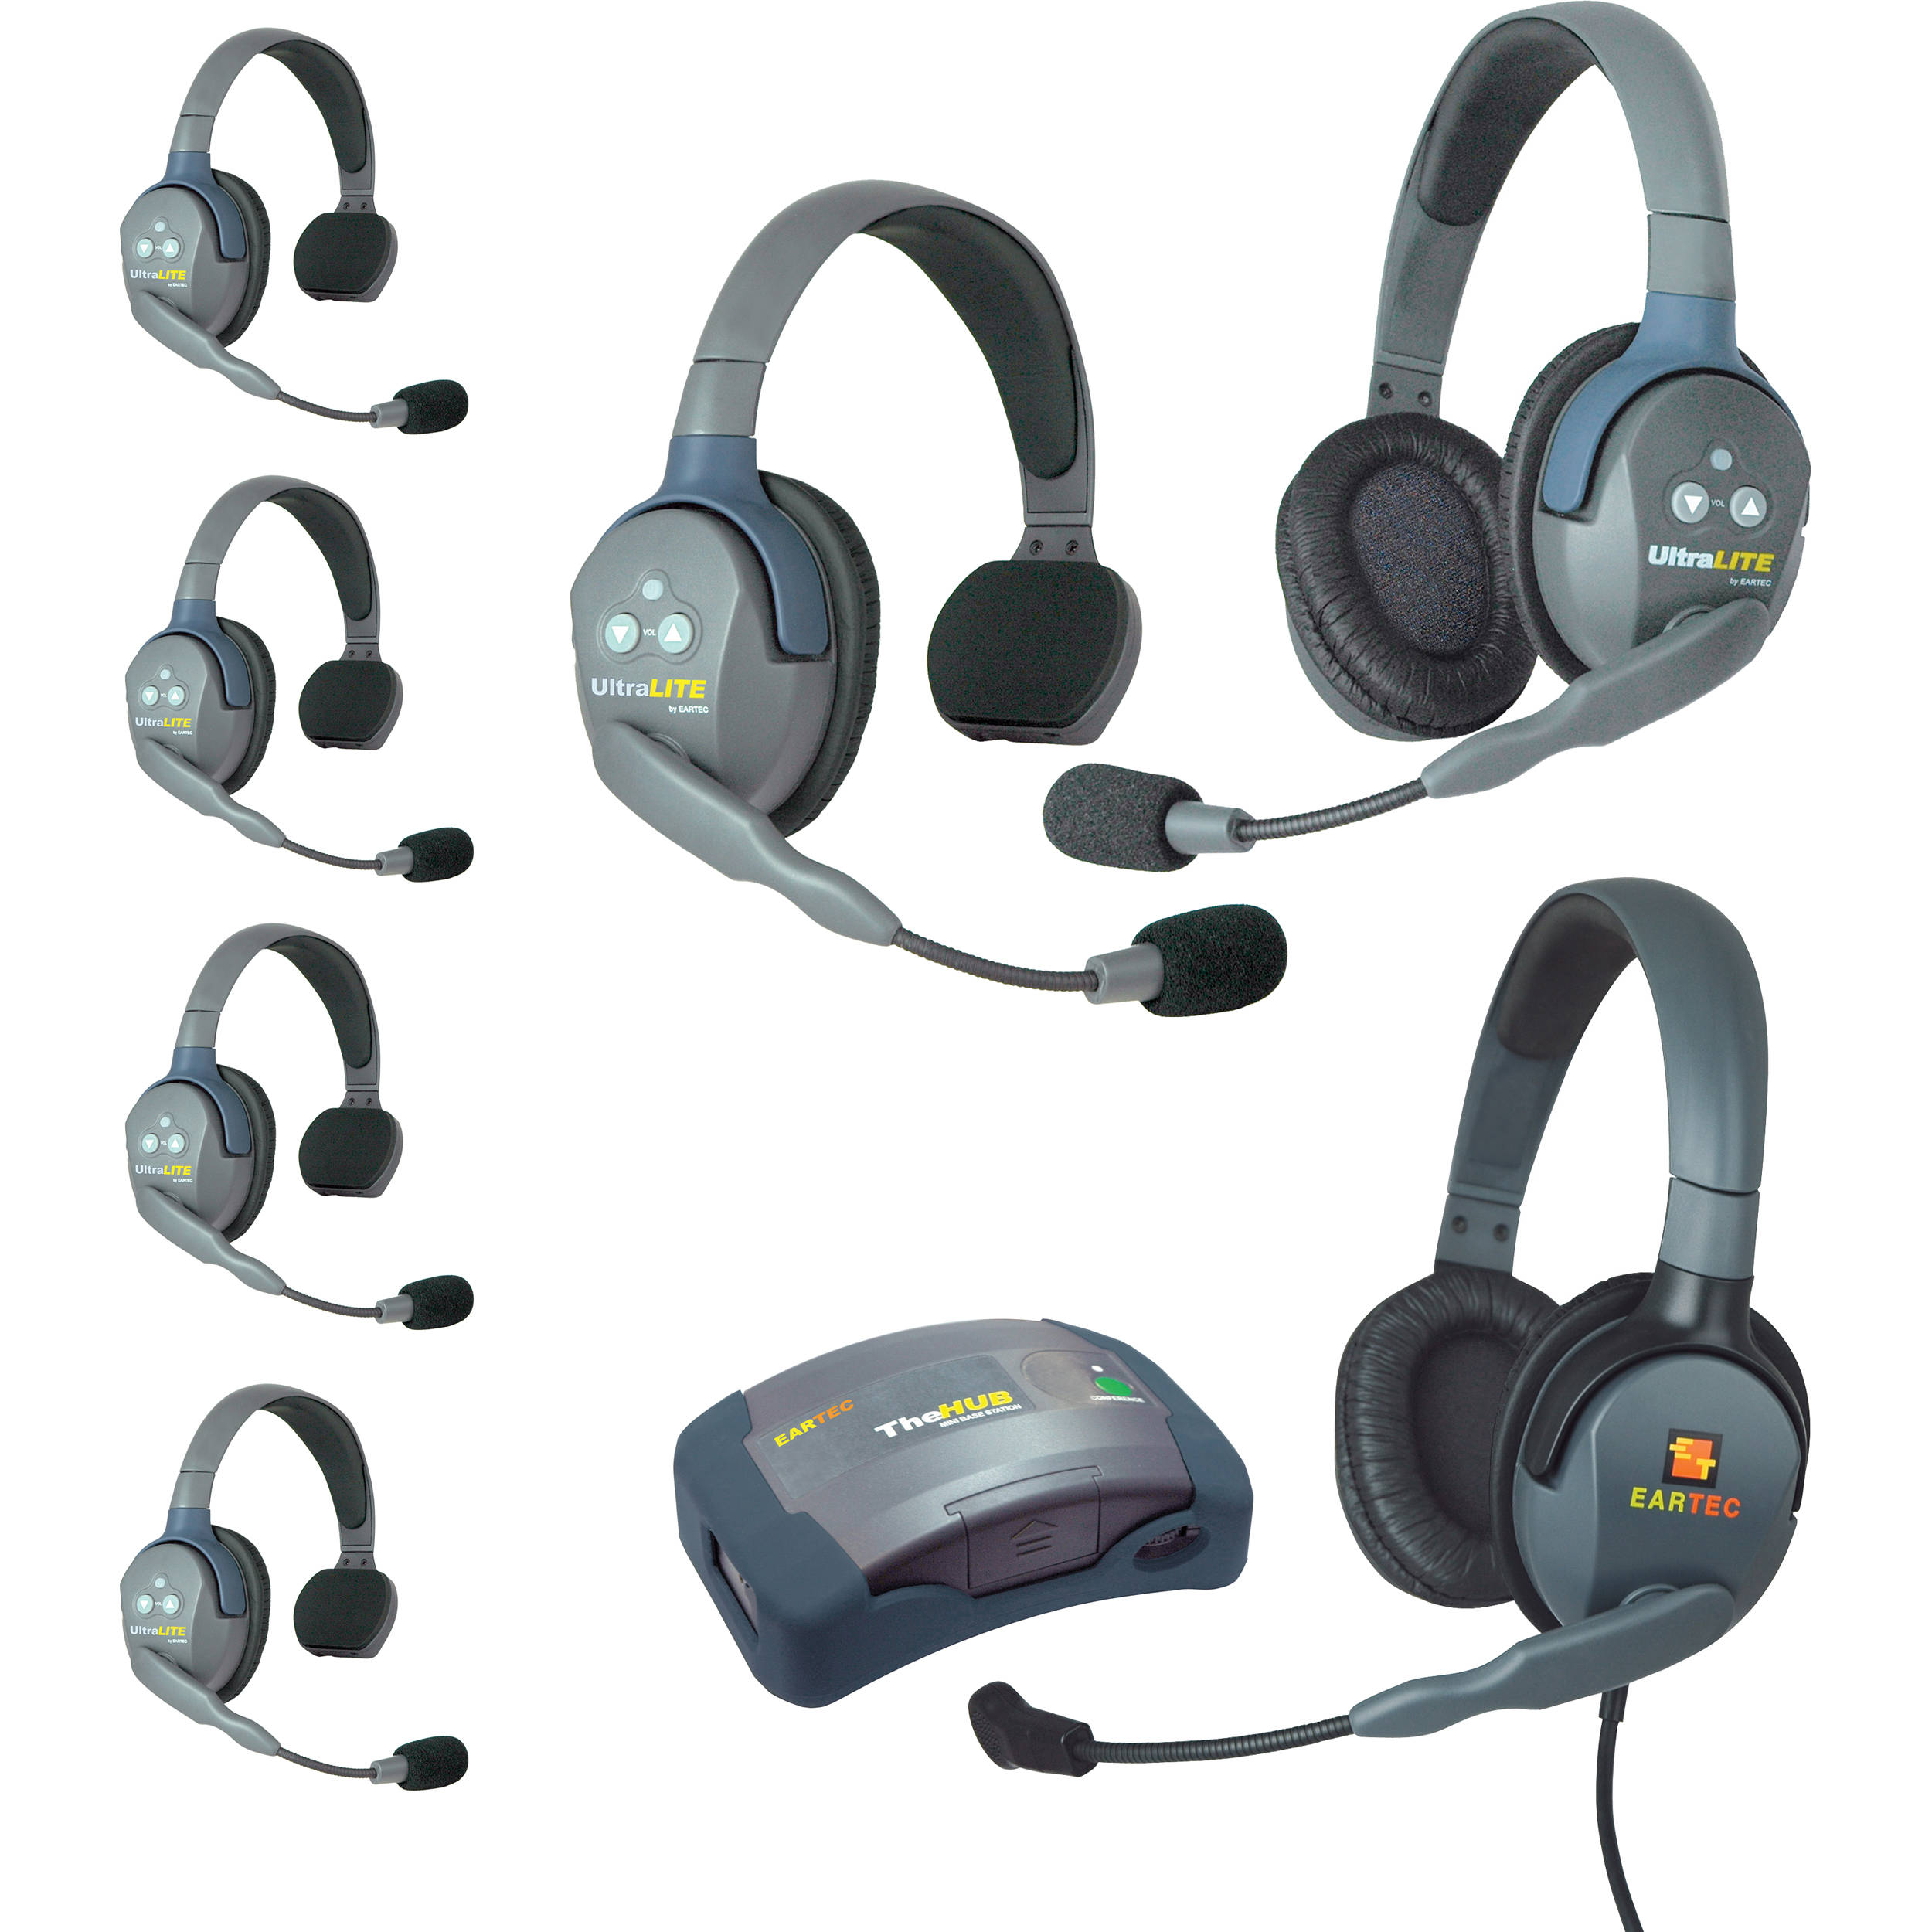 Eartec Hub751mxd Ultralite 7 Person Hub Intercom Bh Home Systems Wiring Drawings System With Max 4g Double Headset Usa